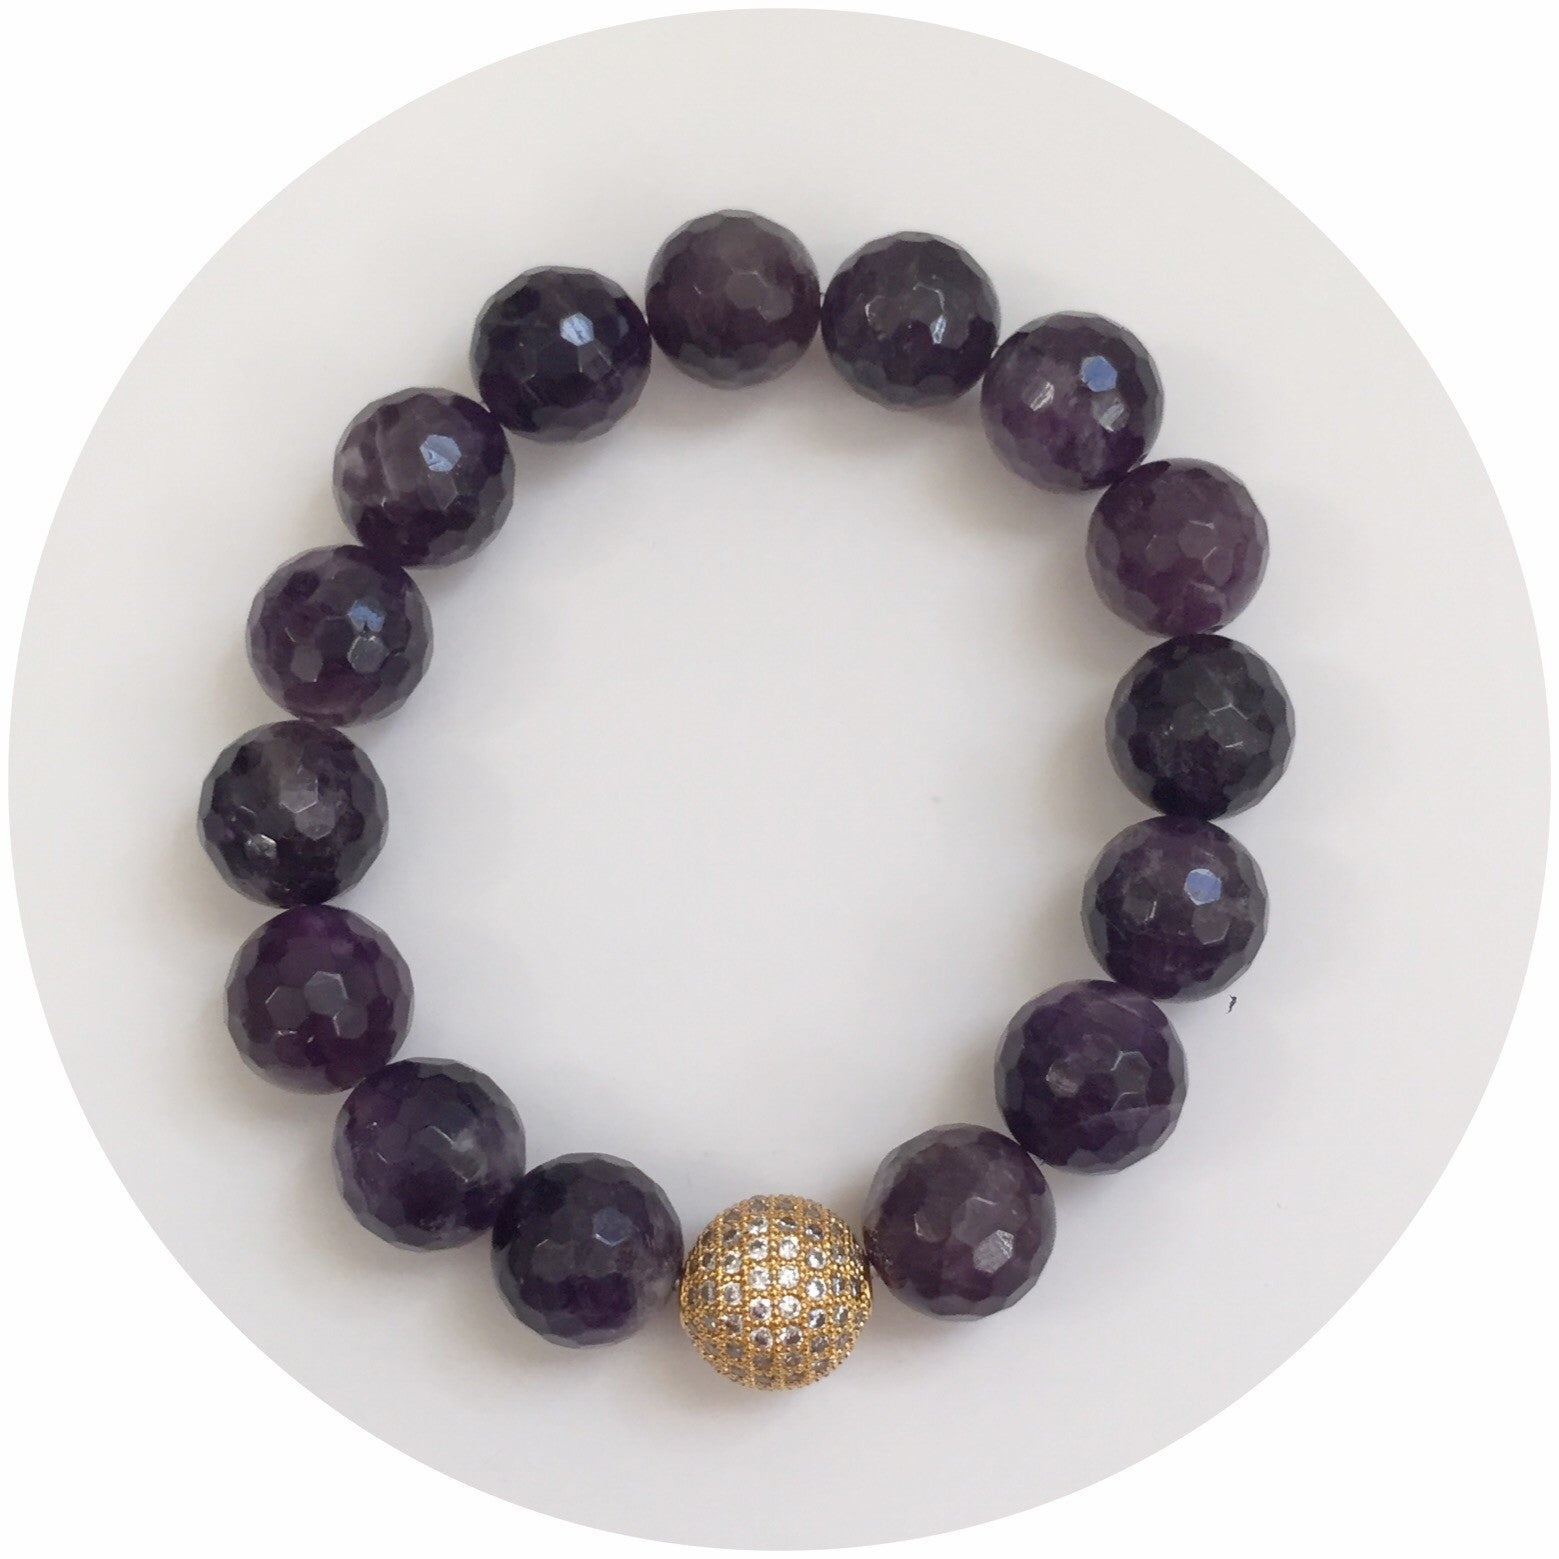 Amethyst with CZ Micro Pavé Gold Accent - Oriana Lamarca LLC